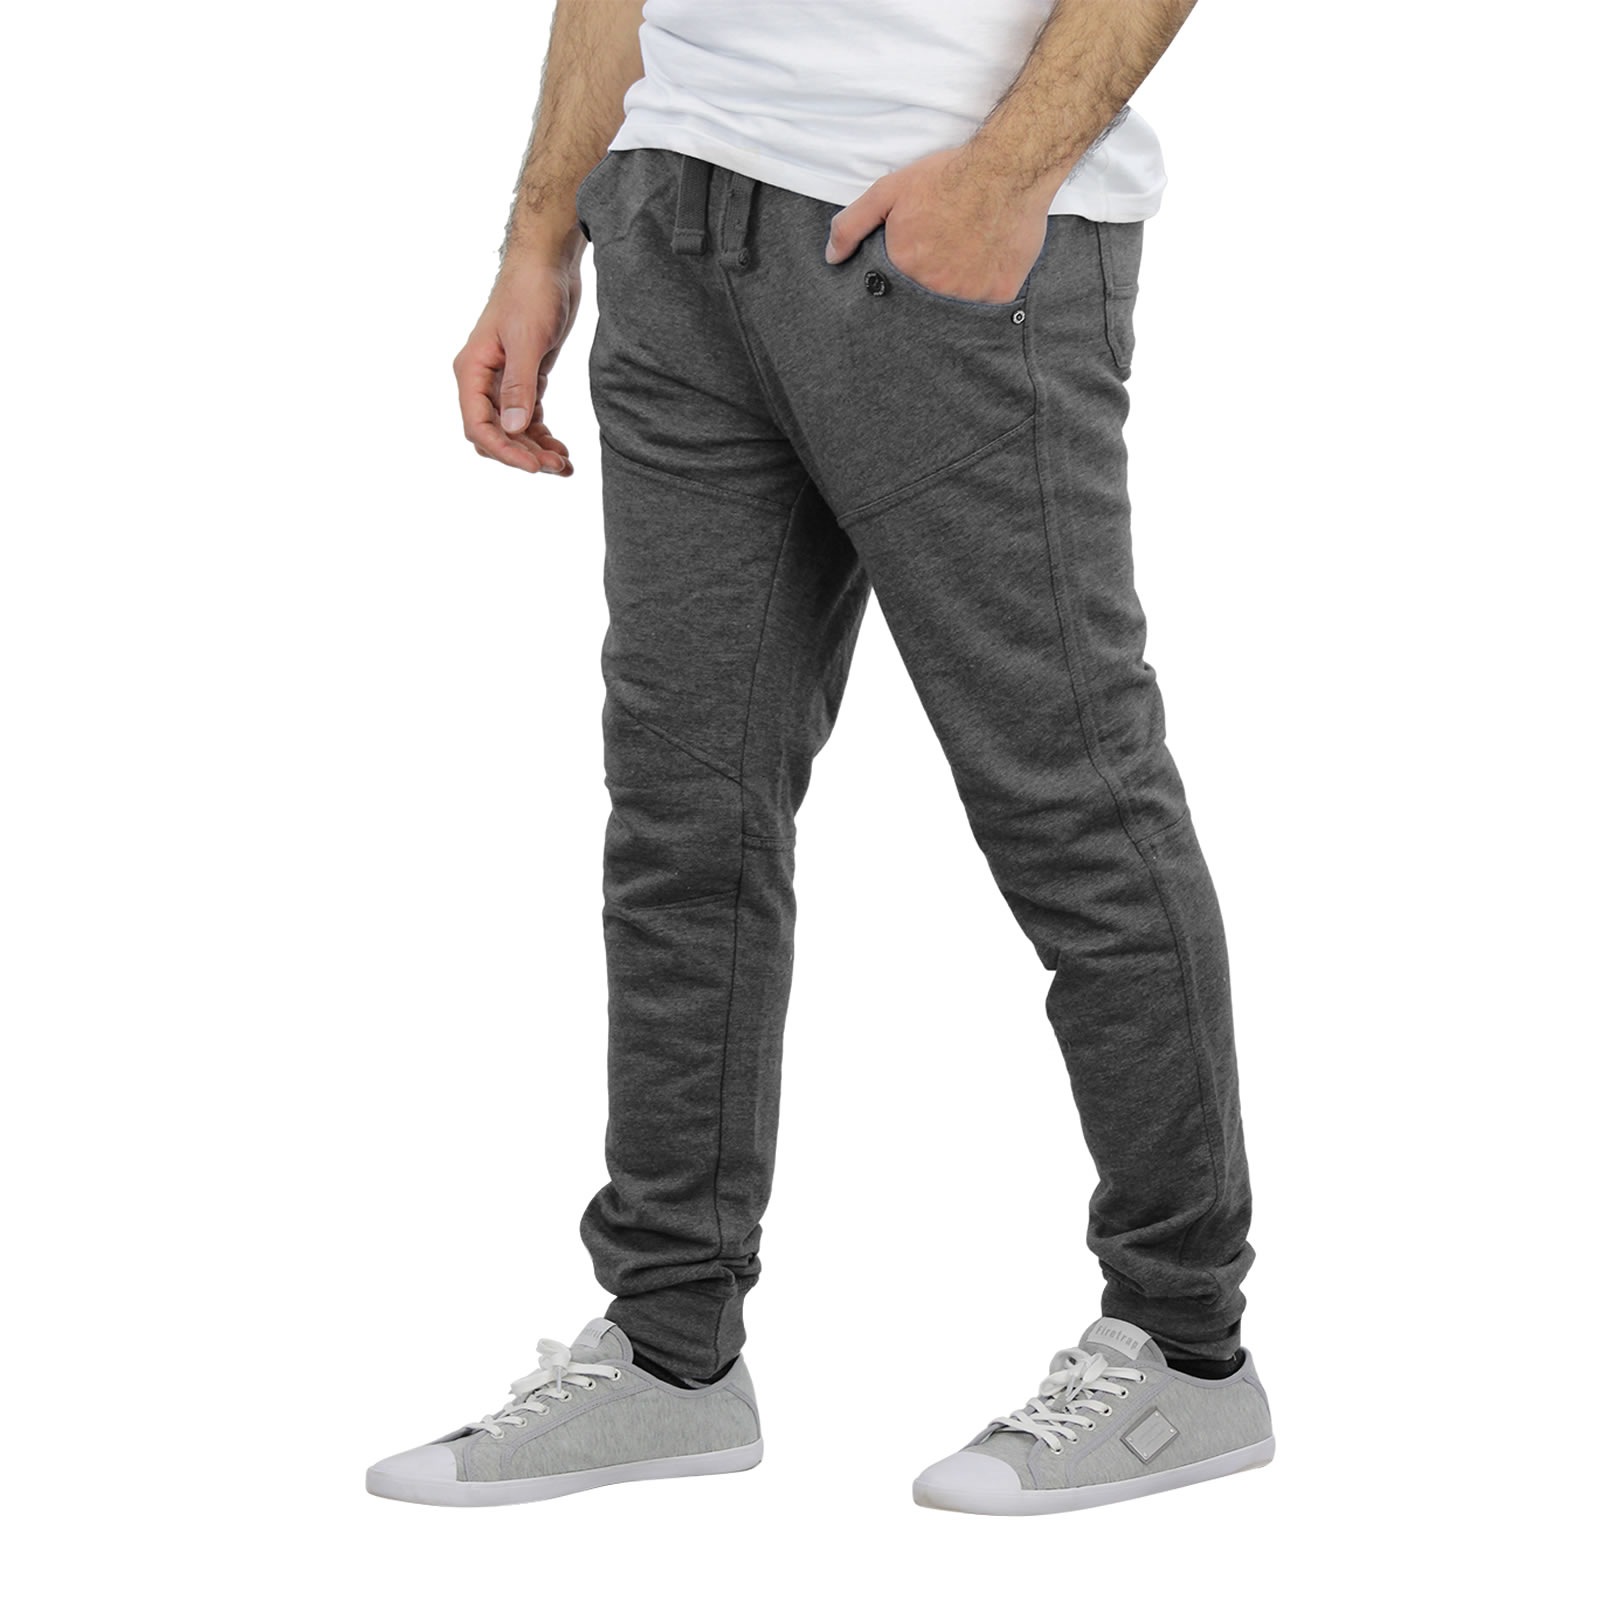 Shop a wide selection of joggers for men from skinny, cuffed to drop crotch or loose styles and colors. ASOS DESIGN two-piece slim woven joggers with elasticated waist in gray check with neon piping. $ Only & Sons Slim Fit Jogger. $ Lacoste Luxury Joggers with Cuffed Ankle in Regular Fit.